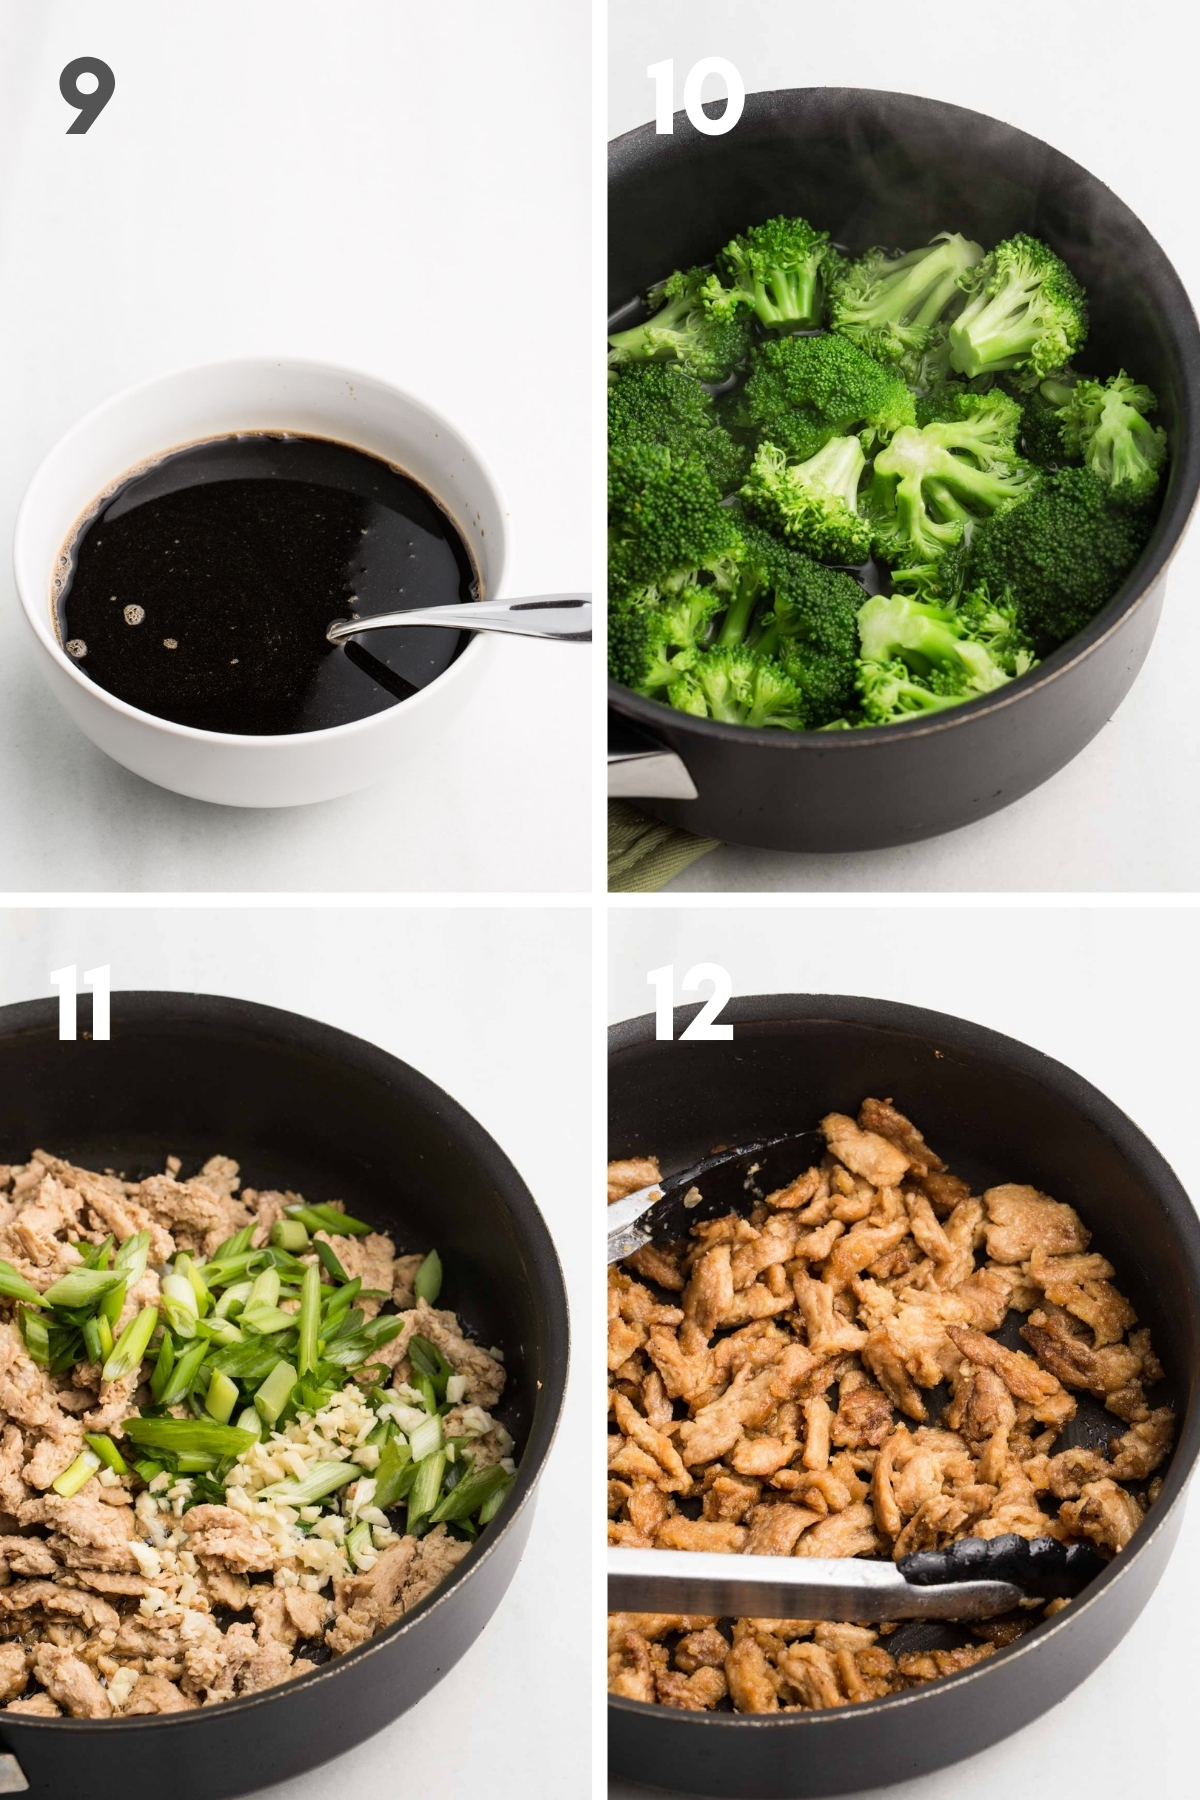 steps 9-12 of vegan beef and broccoli: soy sauce mixture in white bowl, steamed broccoli in saucepan, soy curls in skillet, crispy cooked soy curls in skillet